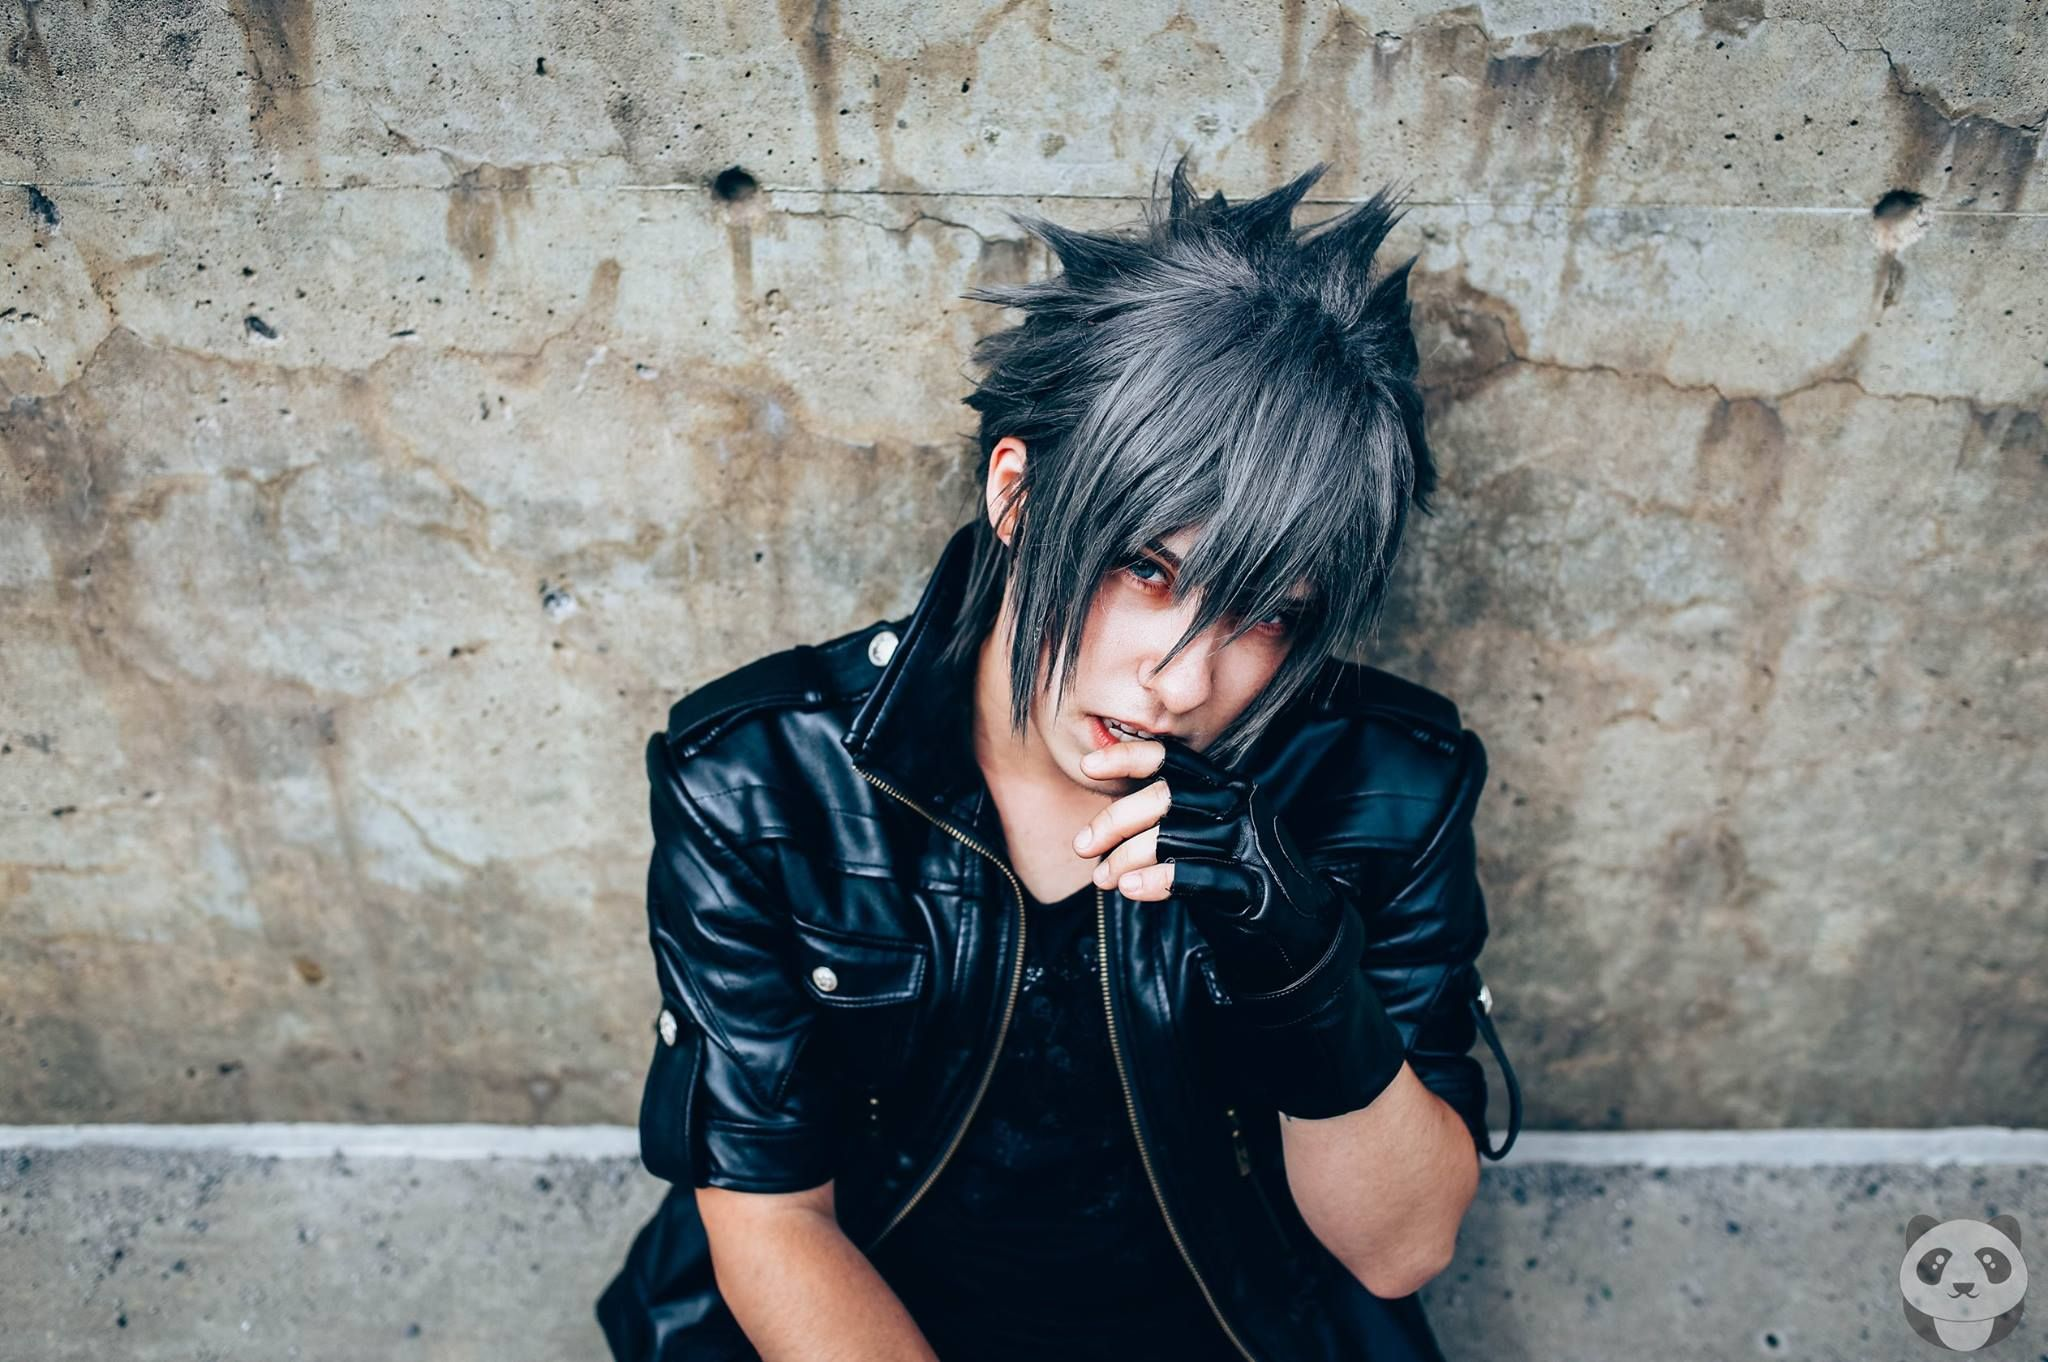 Noctis from Final Fantasy  https://www.facebook.com/pandastudiomontreal/photos/a.1762273567352187.1073741867.1567678463478366/1762319754014235/?type=3&theater